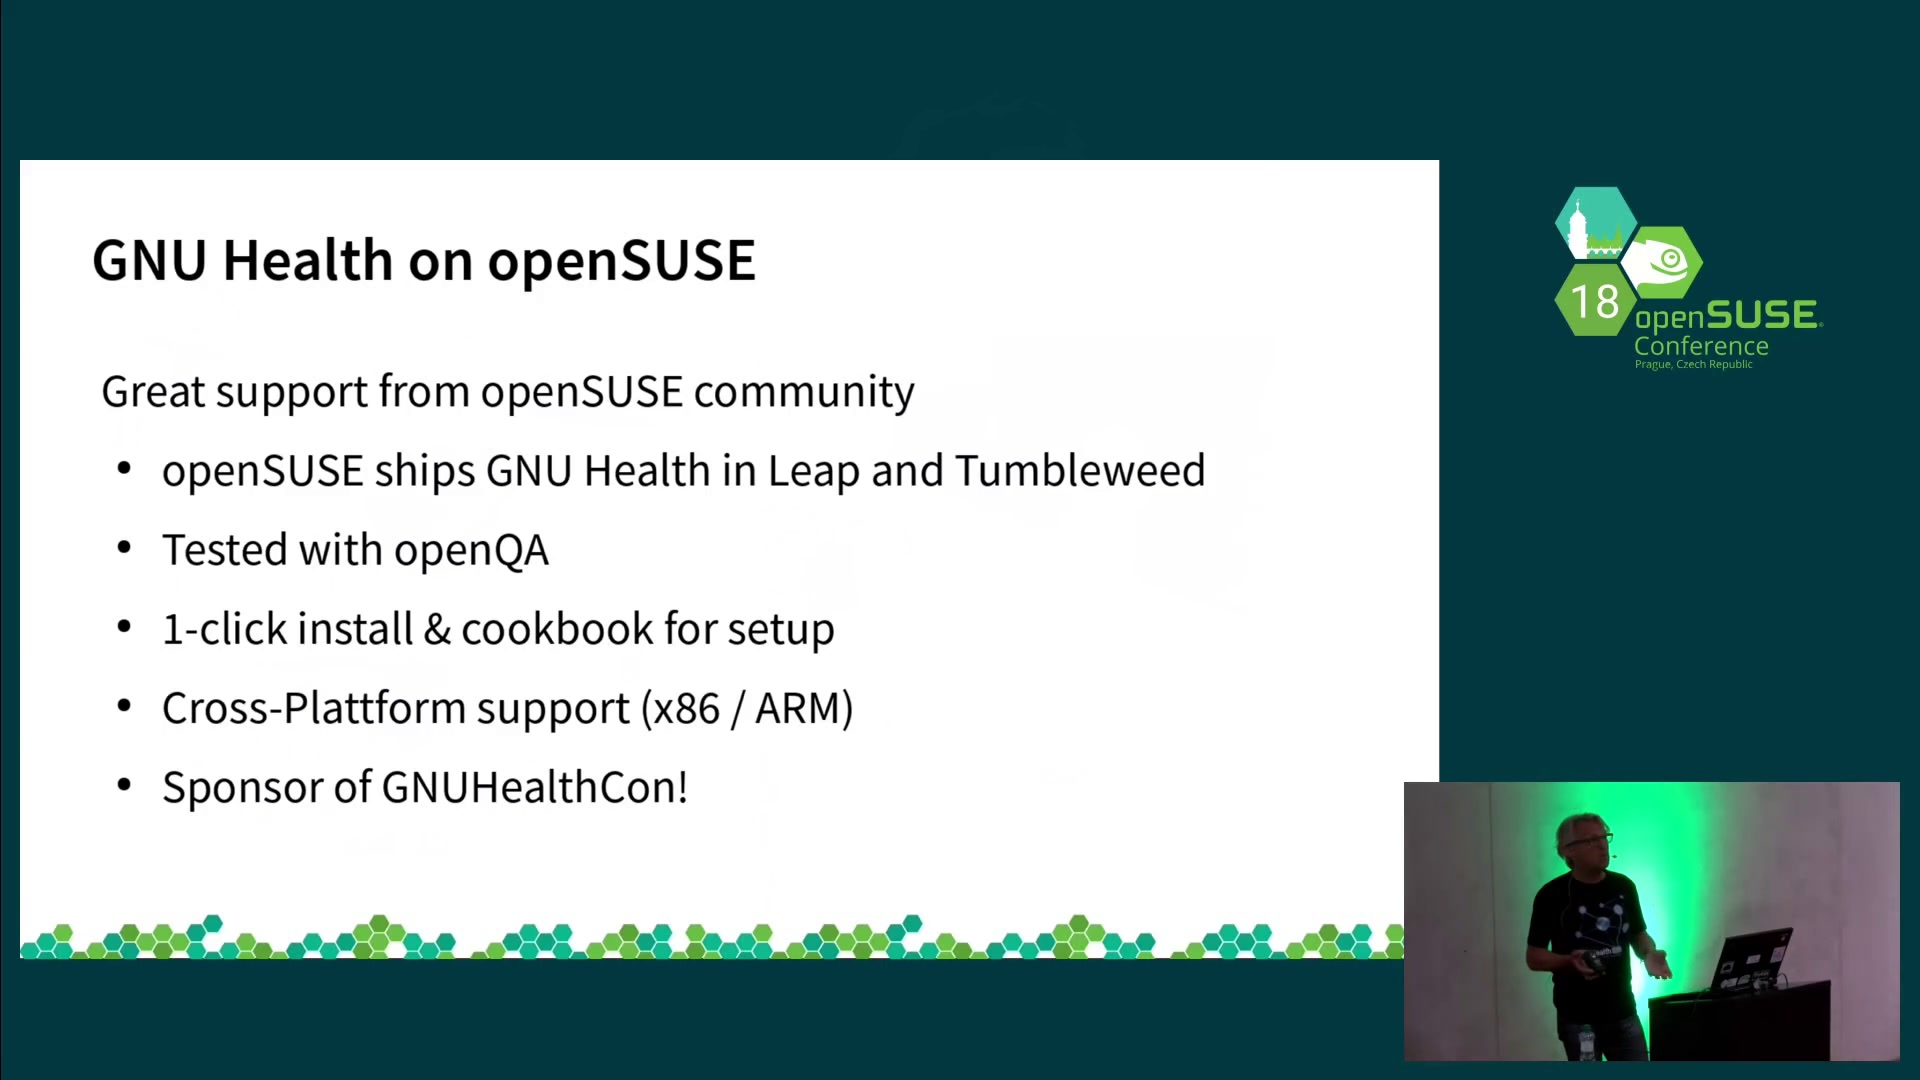 media ccc de - GNU Health on openSUSE - a community view